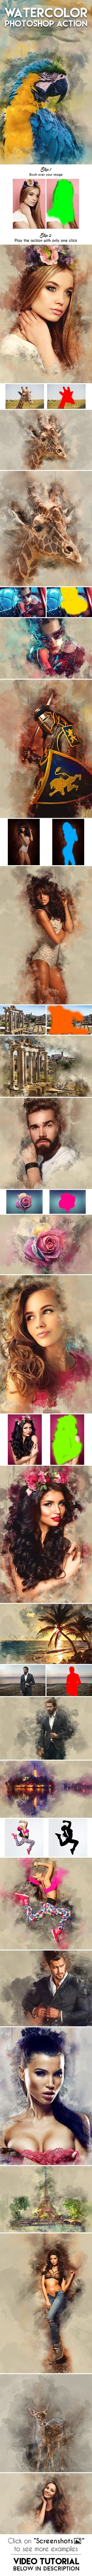 Watercolor Photoshop Action — Photoshop ABR #watercolor #drawing • Download ? https://graphicriver.net/item/watercolor-photoshop-action/18998392?ref=pxcr